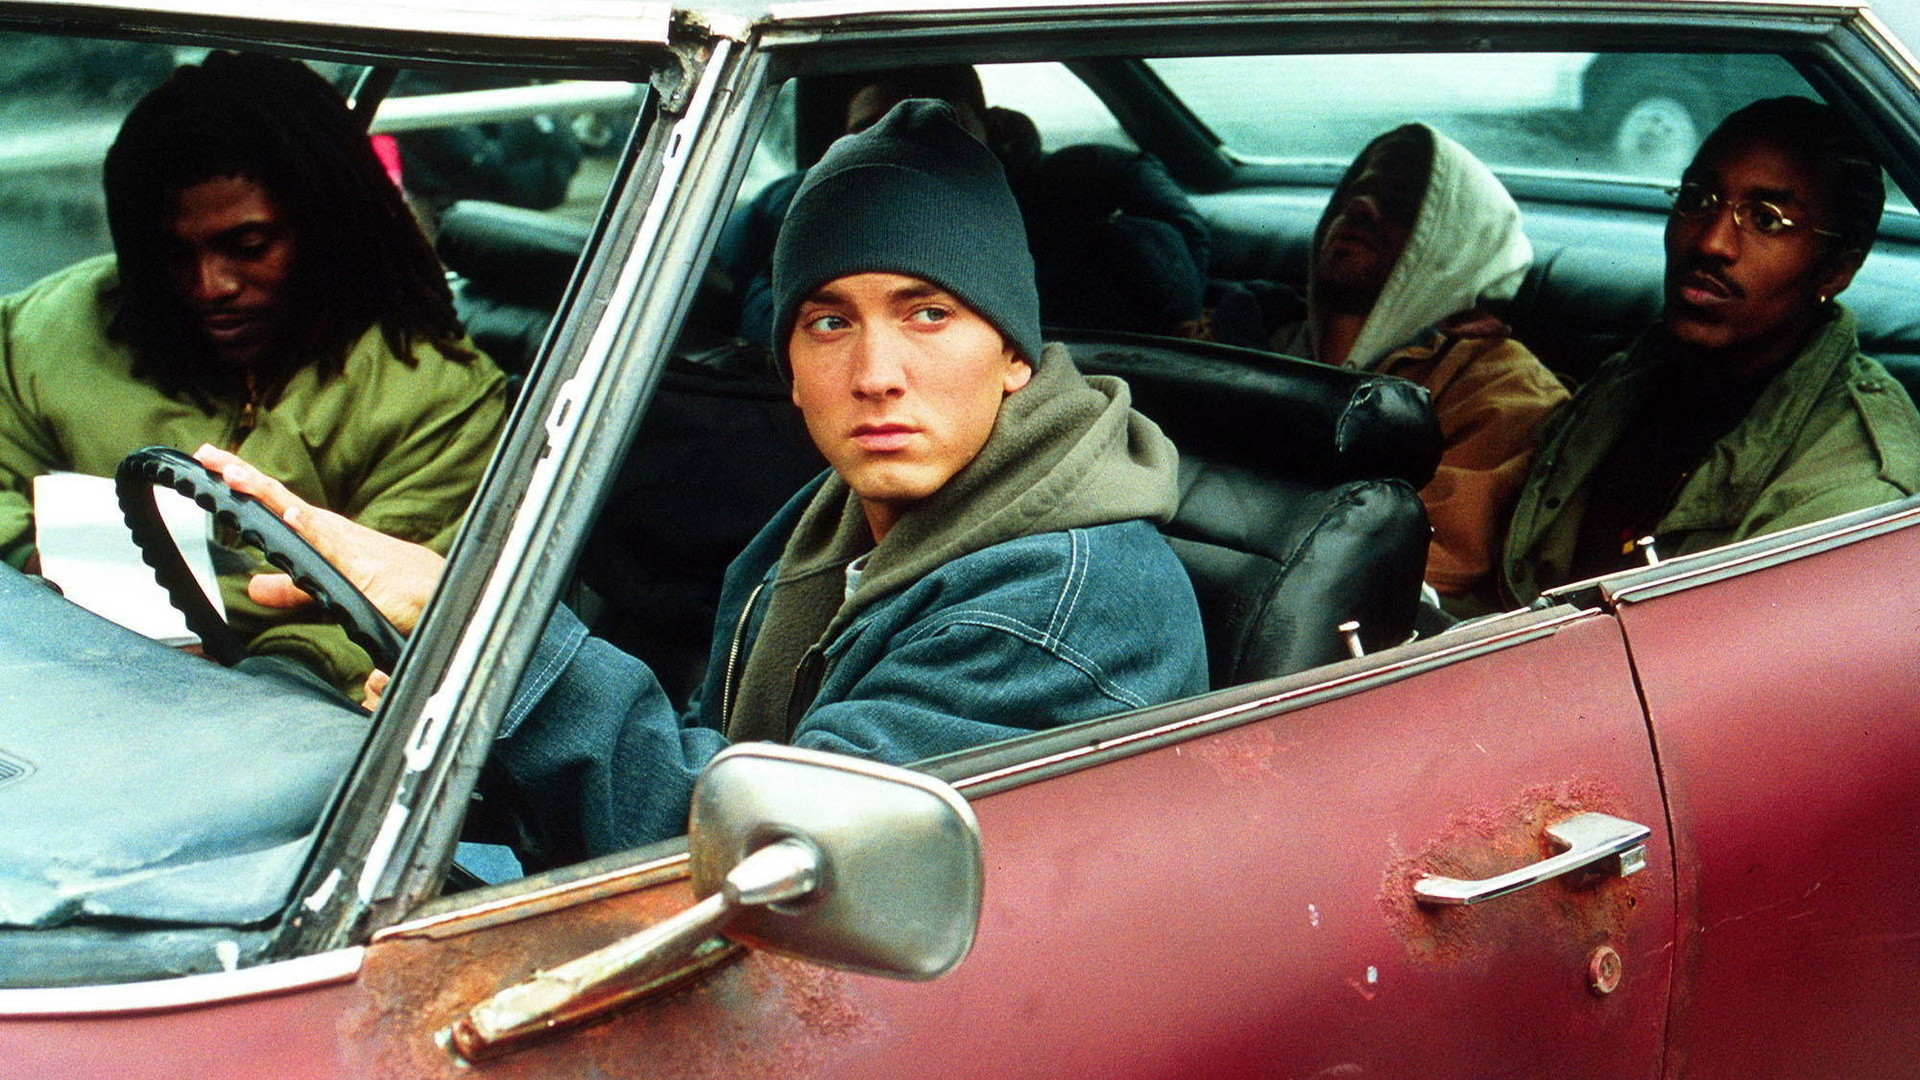 The 8 Mile